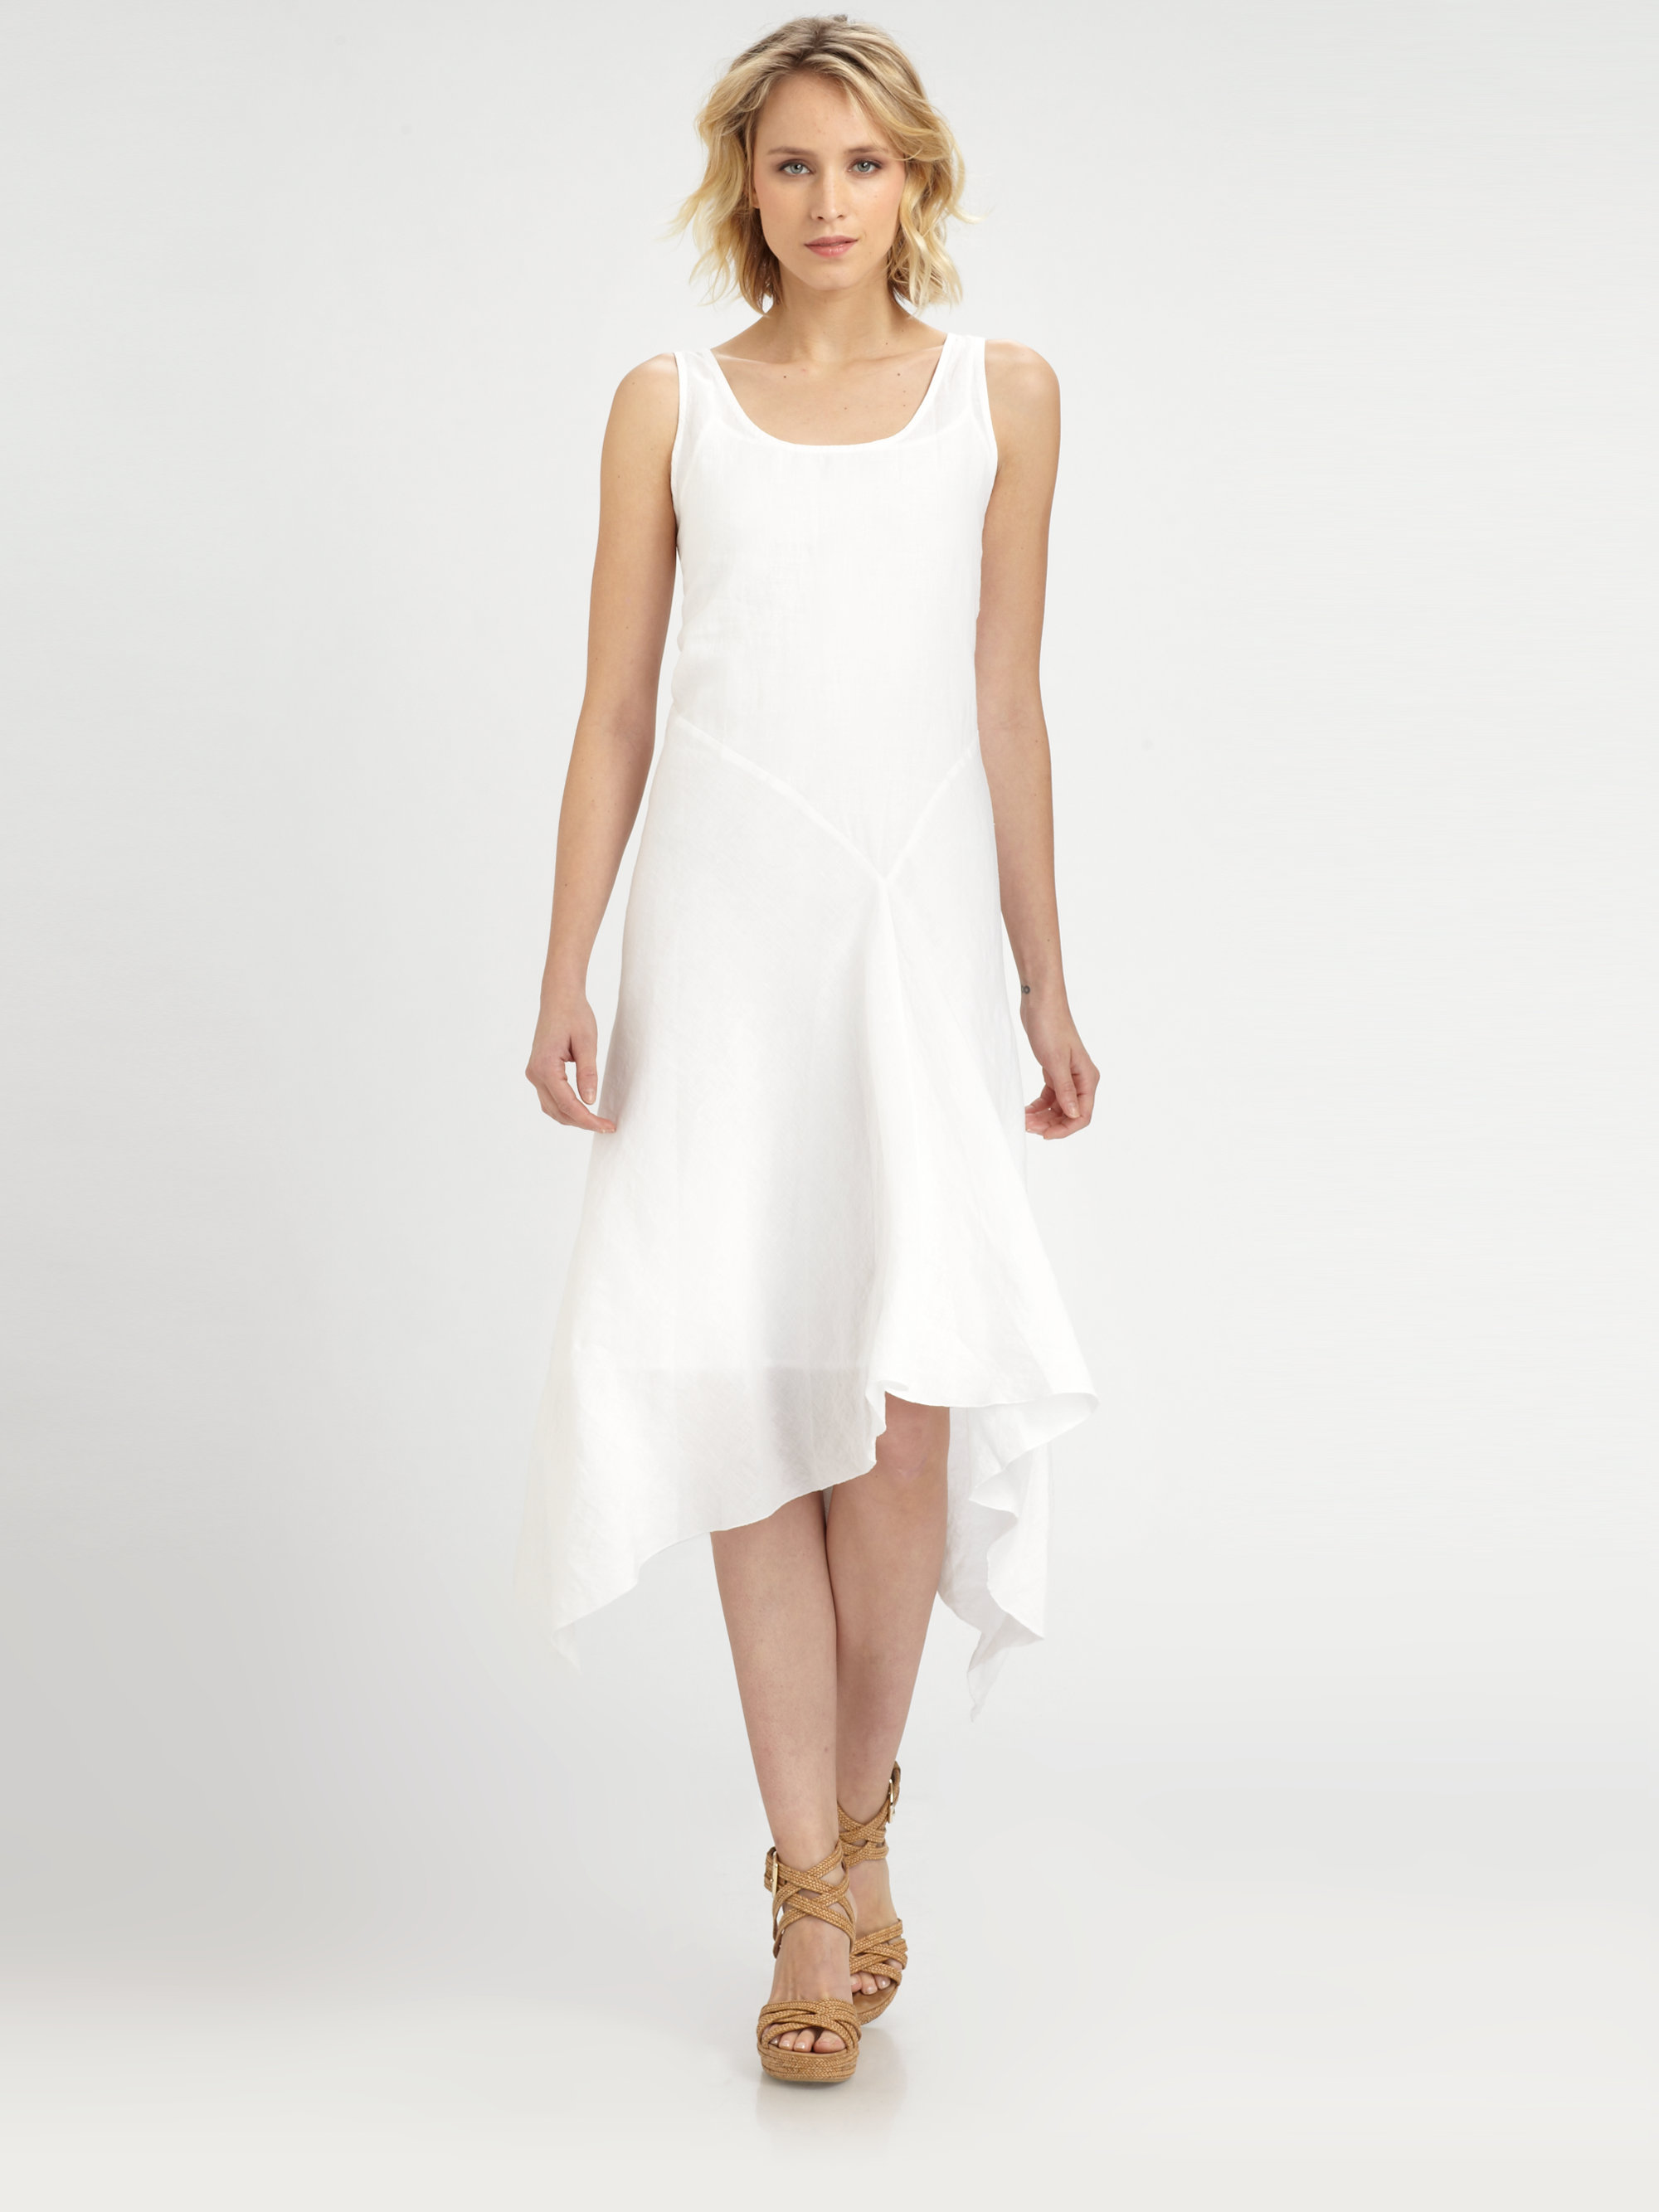 Eileen fisher Irish Linen Sleeveless Dress in White | Lyst